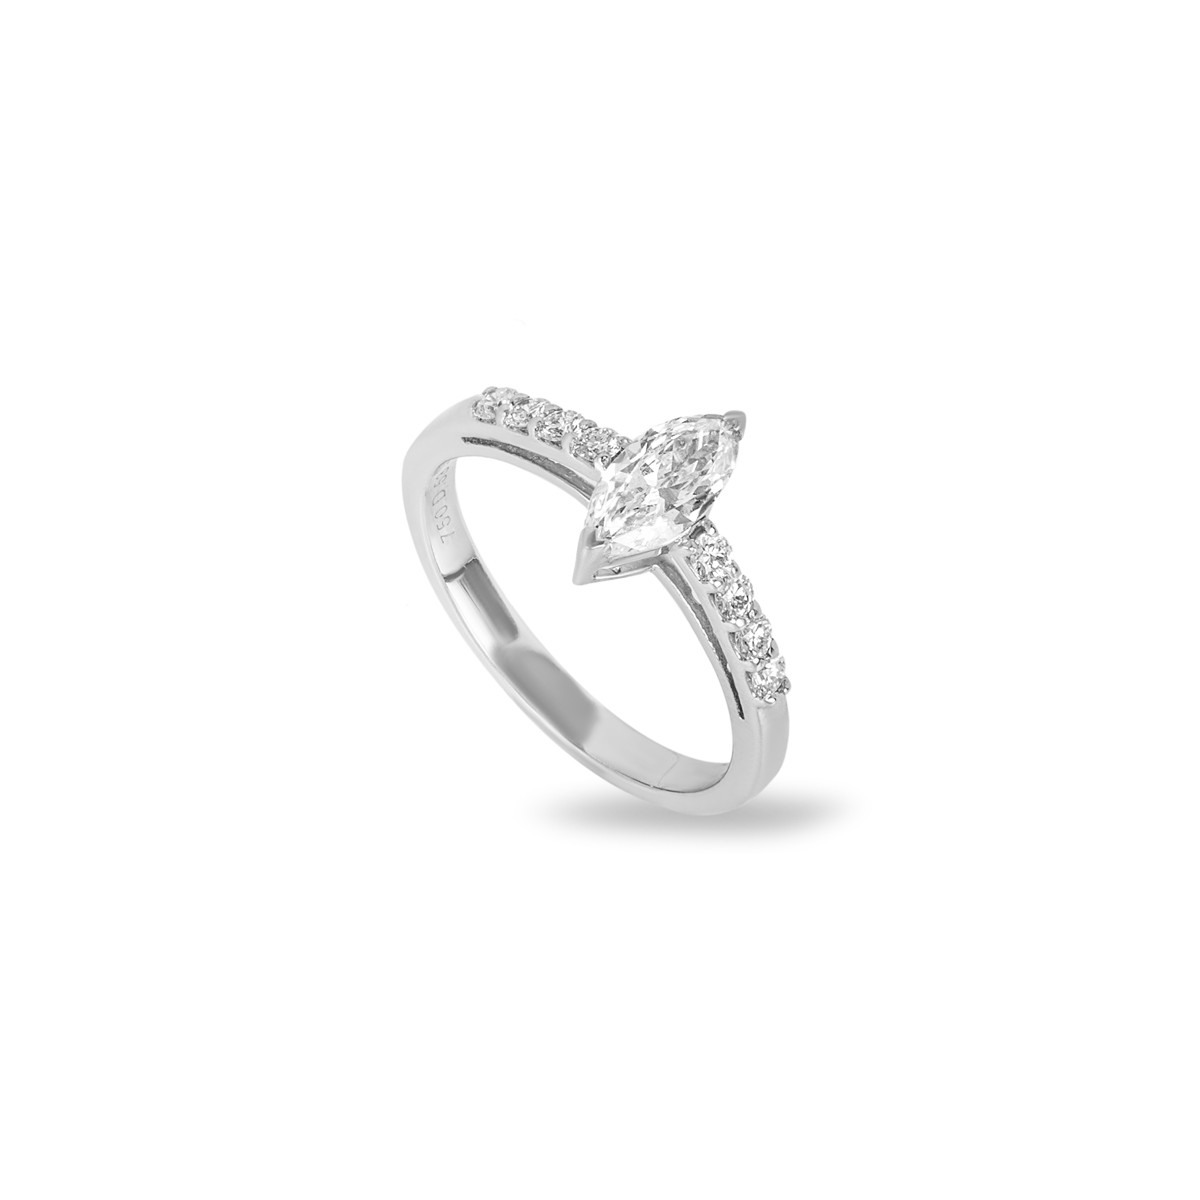 18k White Gold Marquise Cut Diamond Ring 0.53ct I/VS1